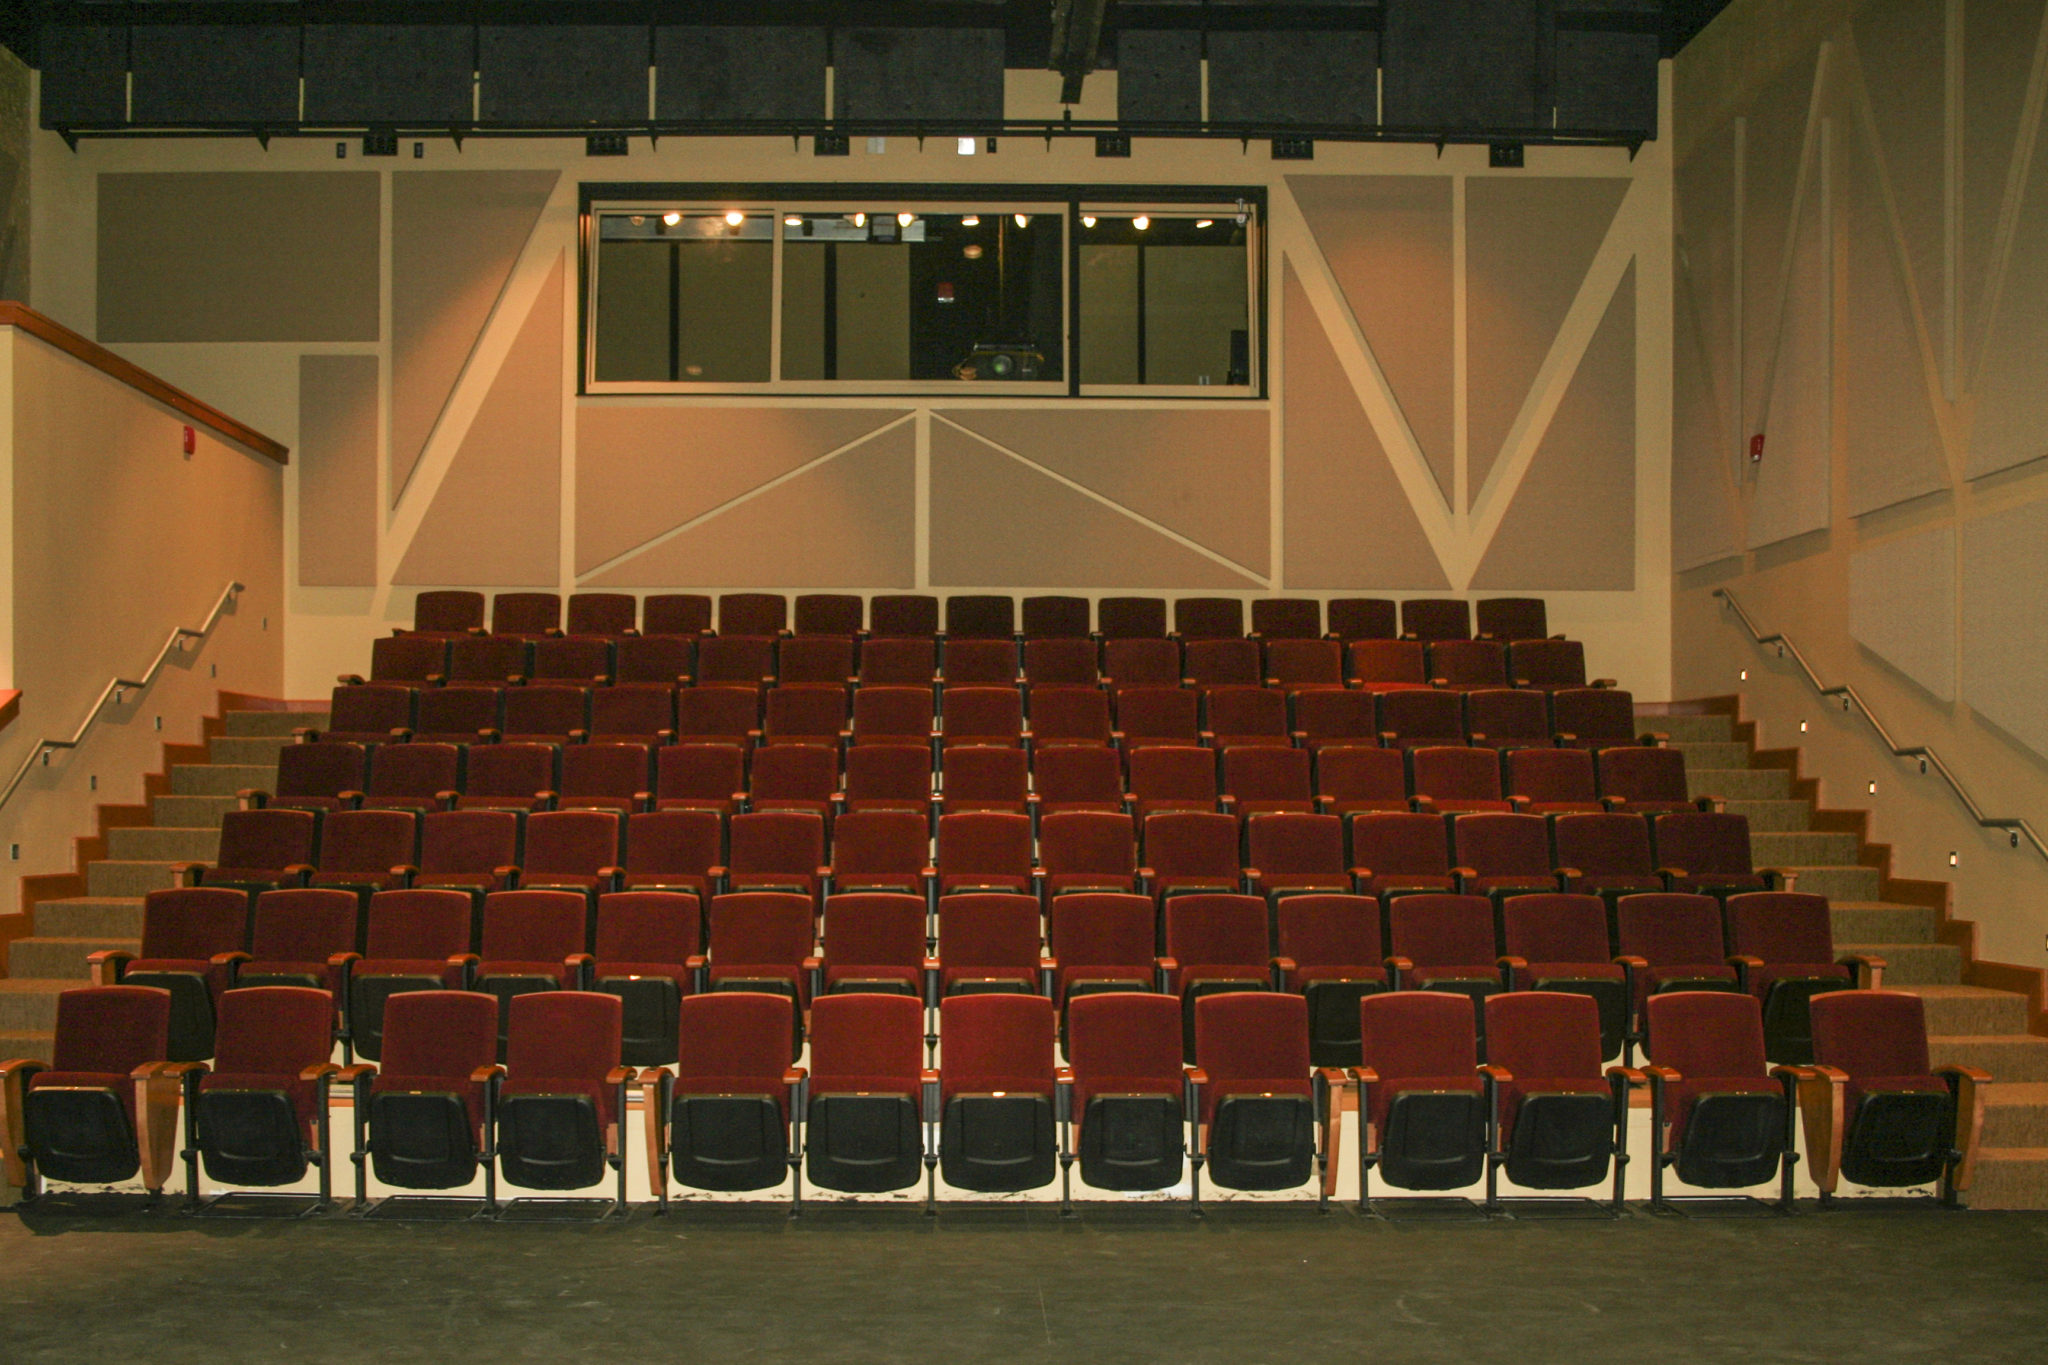 Kennedy-McIlwee Studio Theatre